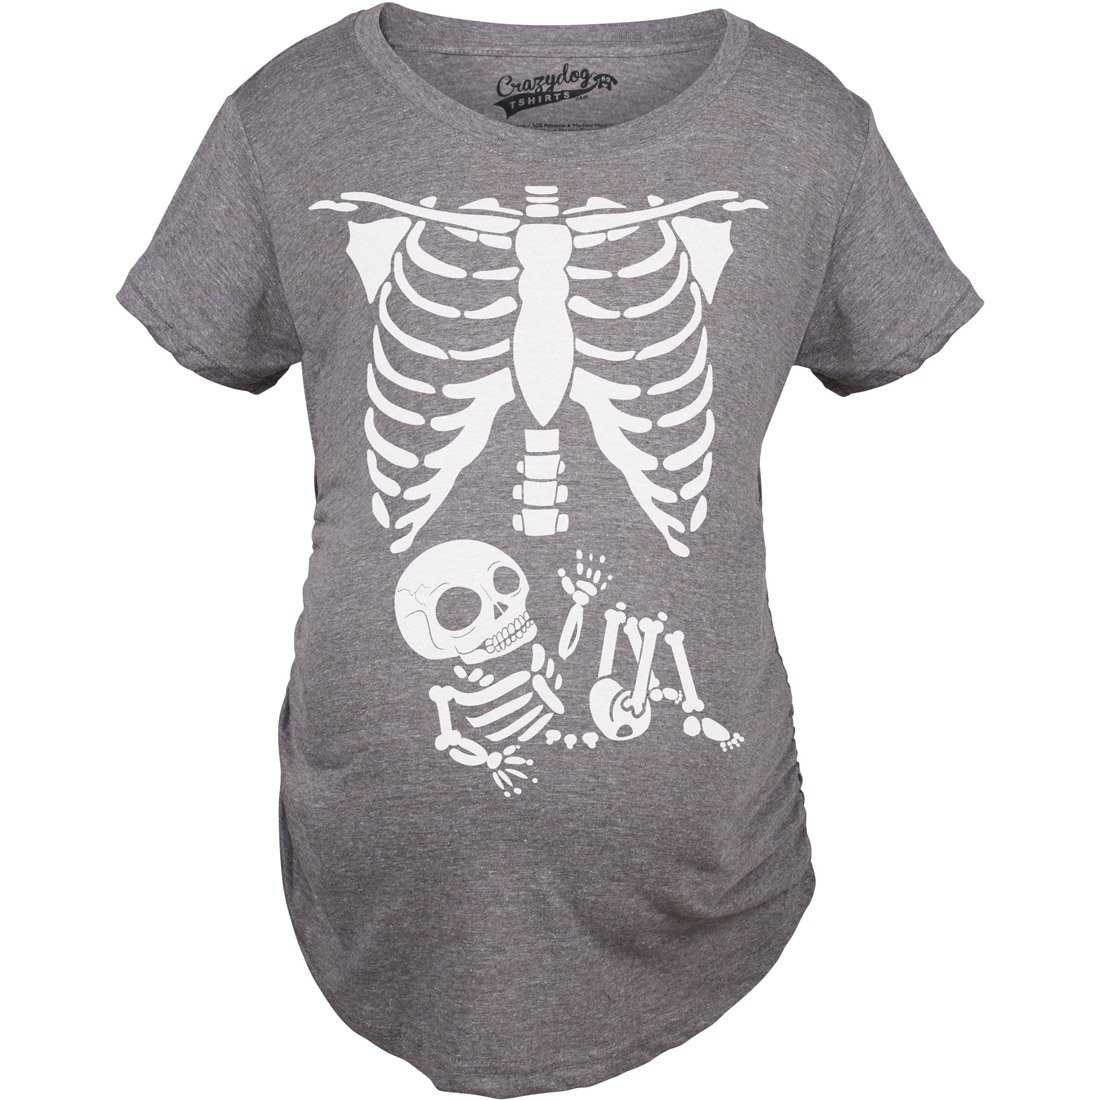 Crazy Dog Tshirts Maternity Skeleton Baby T Shirt Halloween Costume Funny Pregnancy Tee for Mothers - Damen - 015RibCageMAT